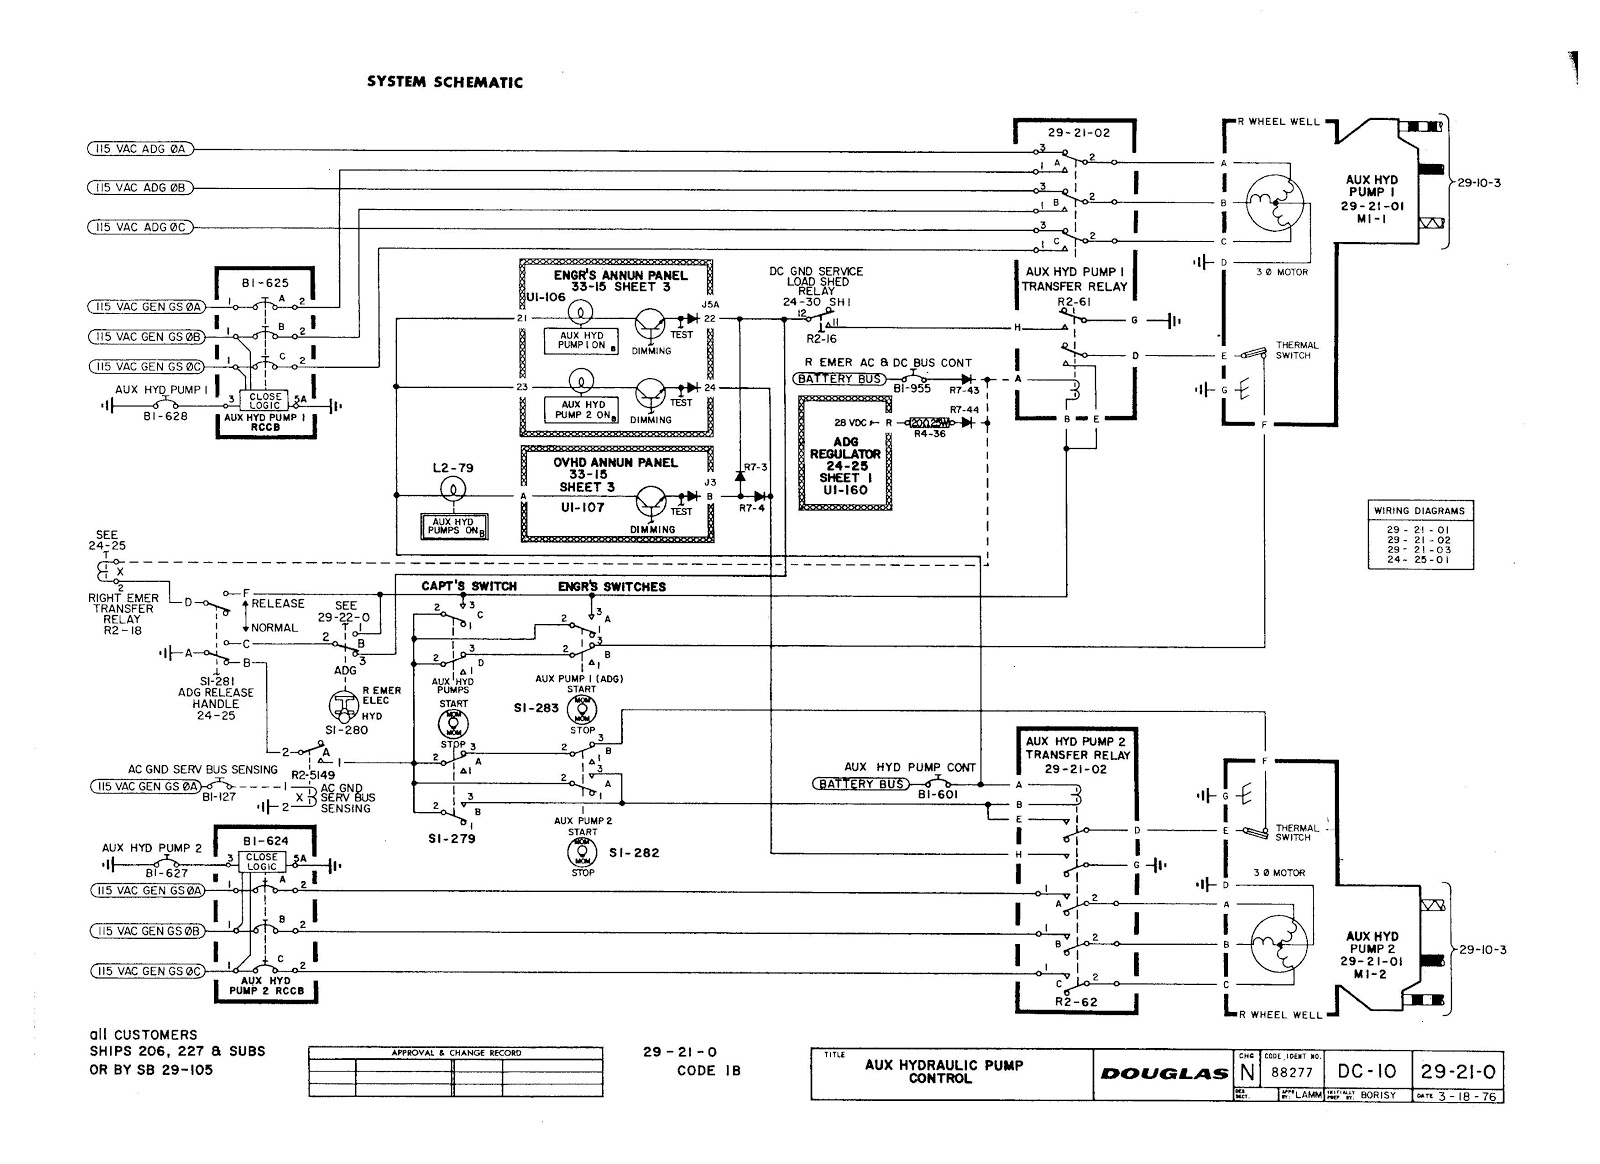 medium resolution of dc 10 wiring diagram wiring diagram featured schematic diagram dc10 hydraulic system